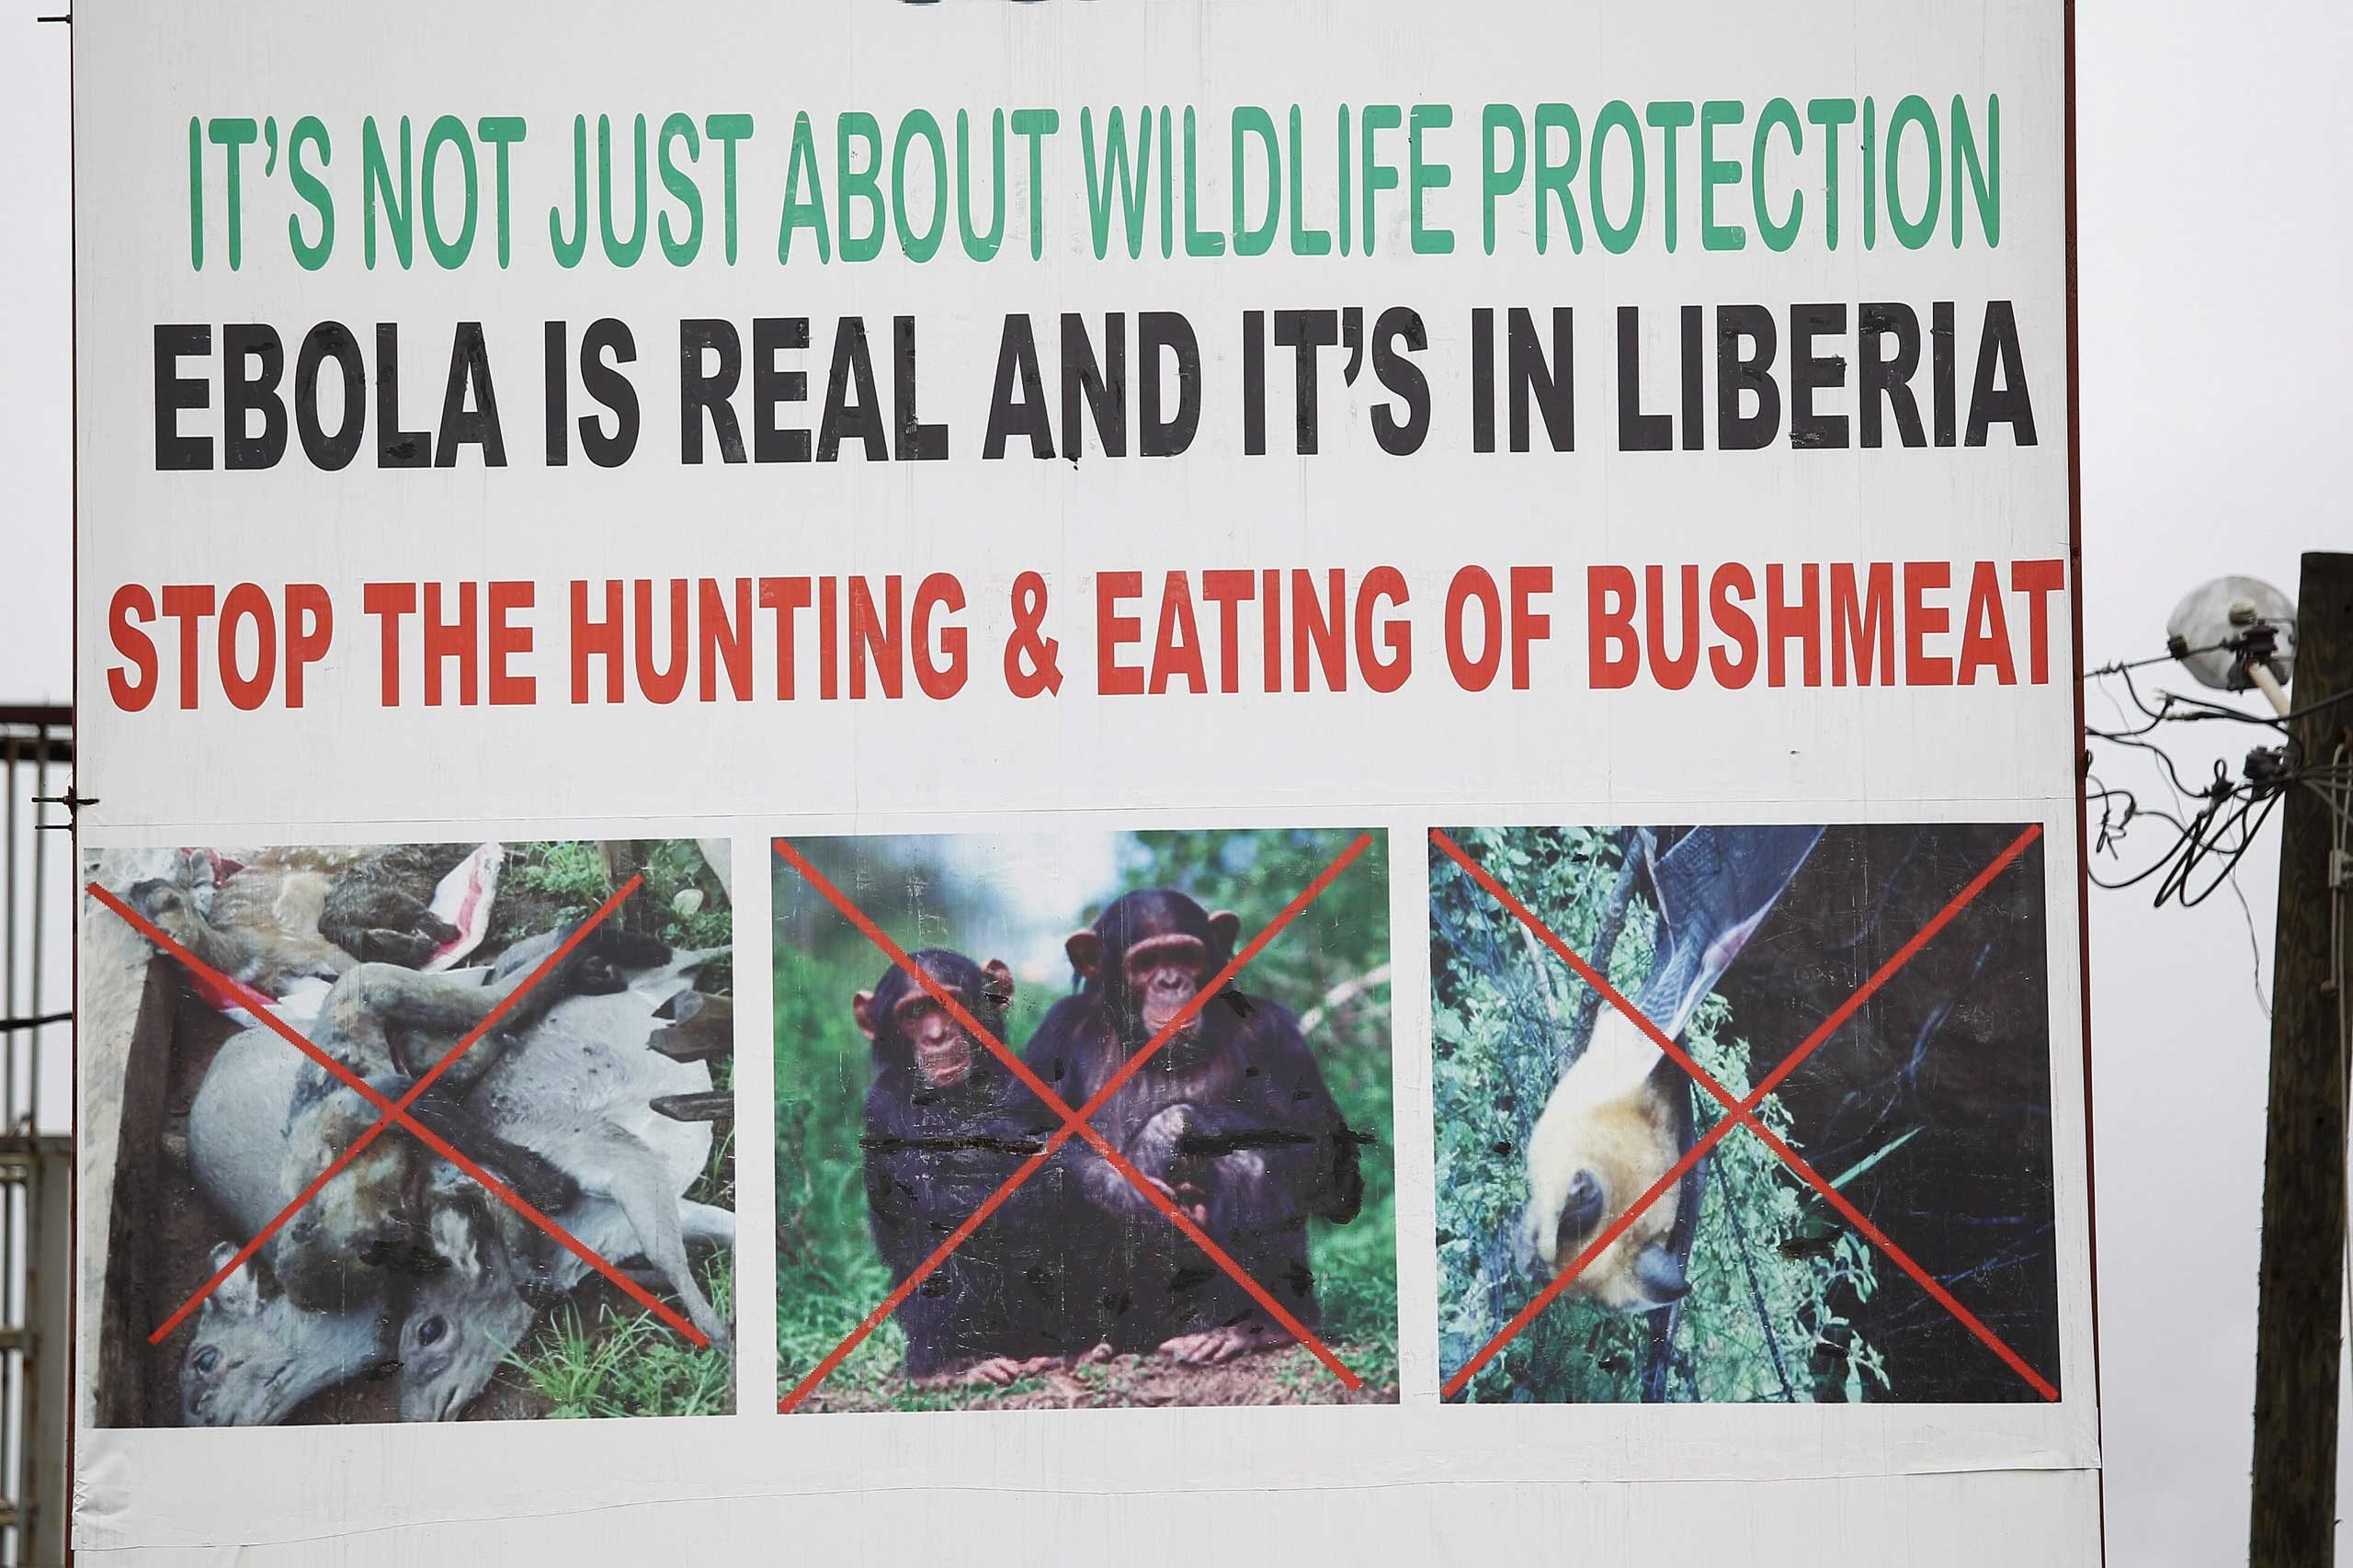 A billboard warning against eating wild animals, seen in Monrovia, Liberia, Oct. 6, 2014.